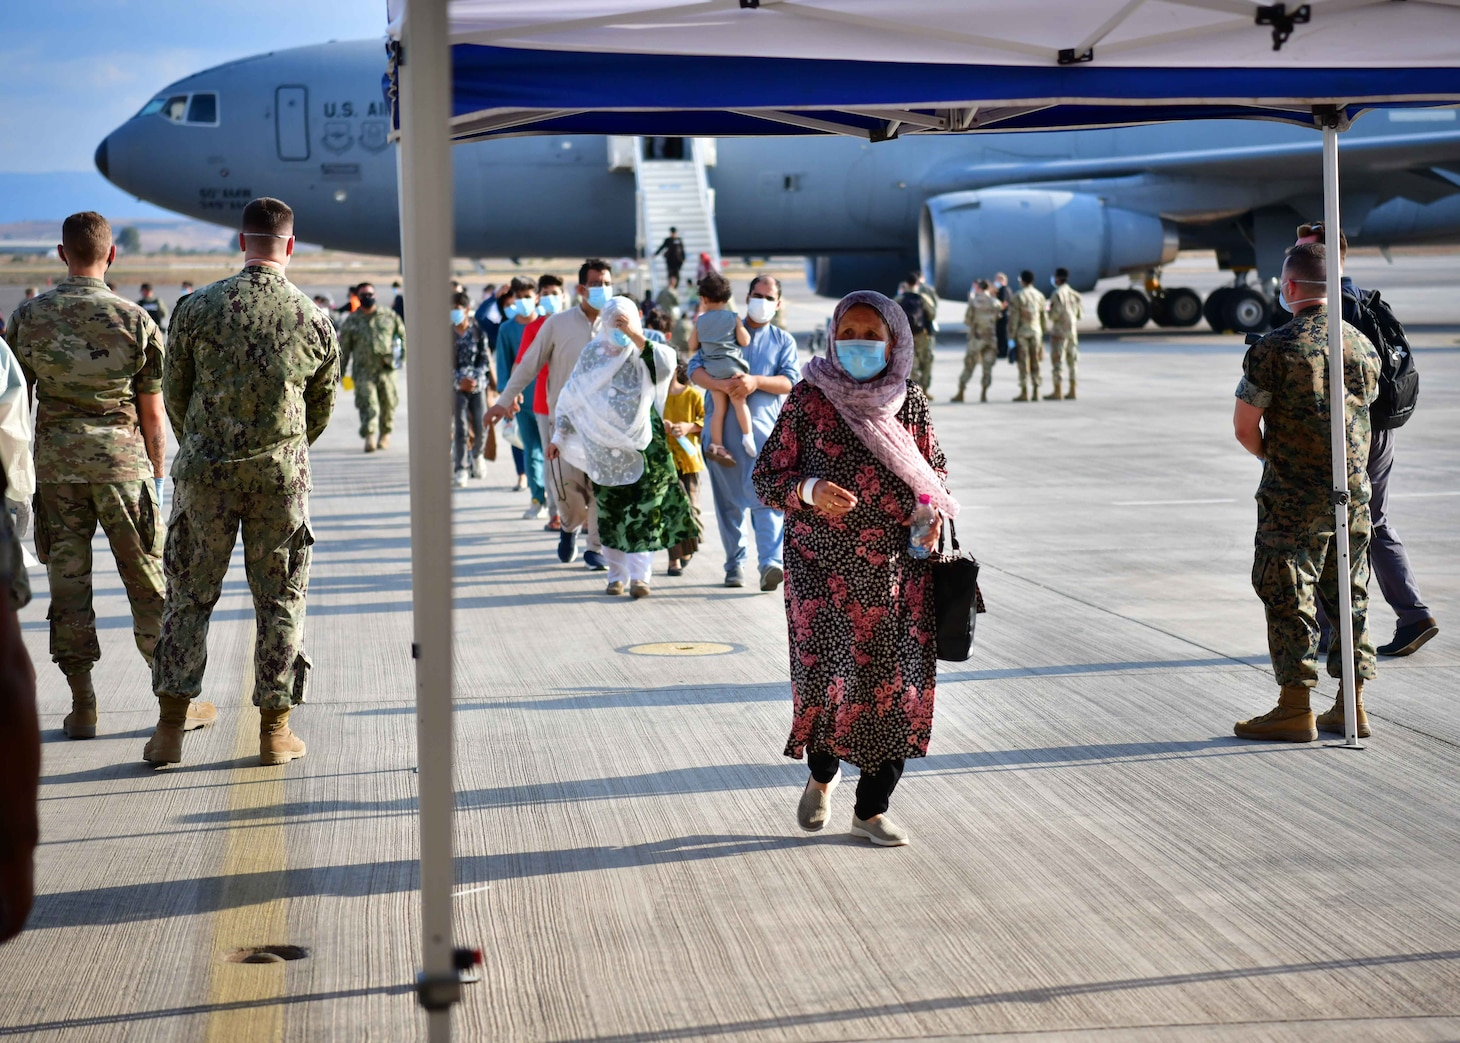 NAVAL AIR STATION SIGONELLA, Italy (Aug. 22, 2021) Qualified Afghanistan evacuees landed at Naval Air Station Sigonella, Aug. 22, 2021, as part of Operation Allies Refuge, with more arrivals expected in the coming hours and days. NAS Sigonella is currently supporting the Department of Defense mission to facilitate the safe departure and relocation of U.S. citizens, Special Immigration Visa recipients, and vulnerable Afghan populations from Afghanistan.